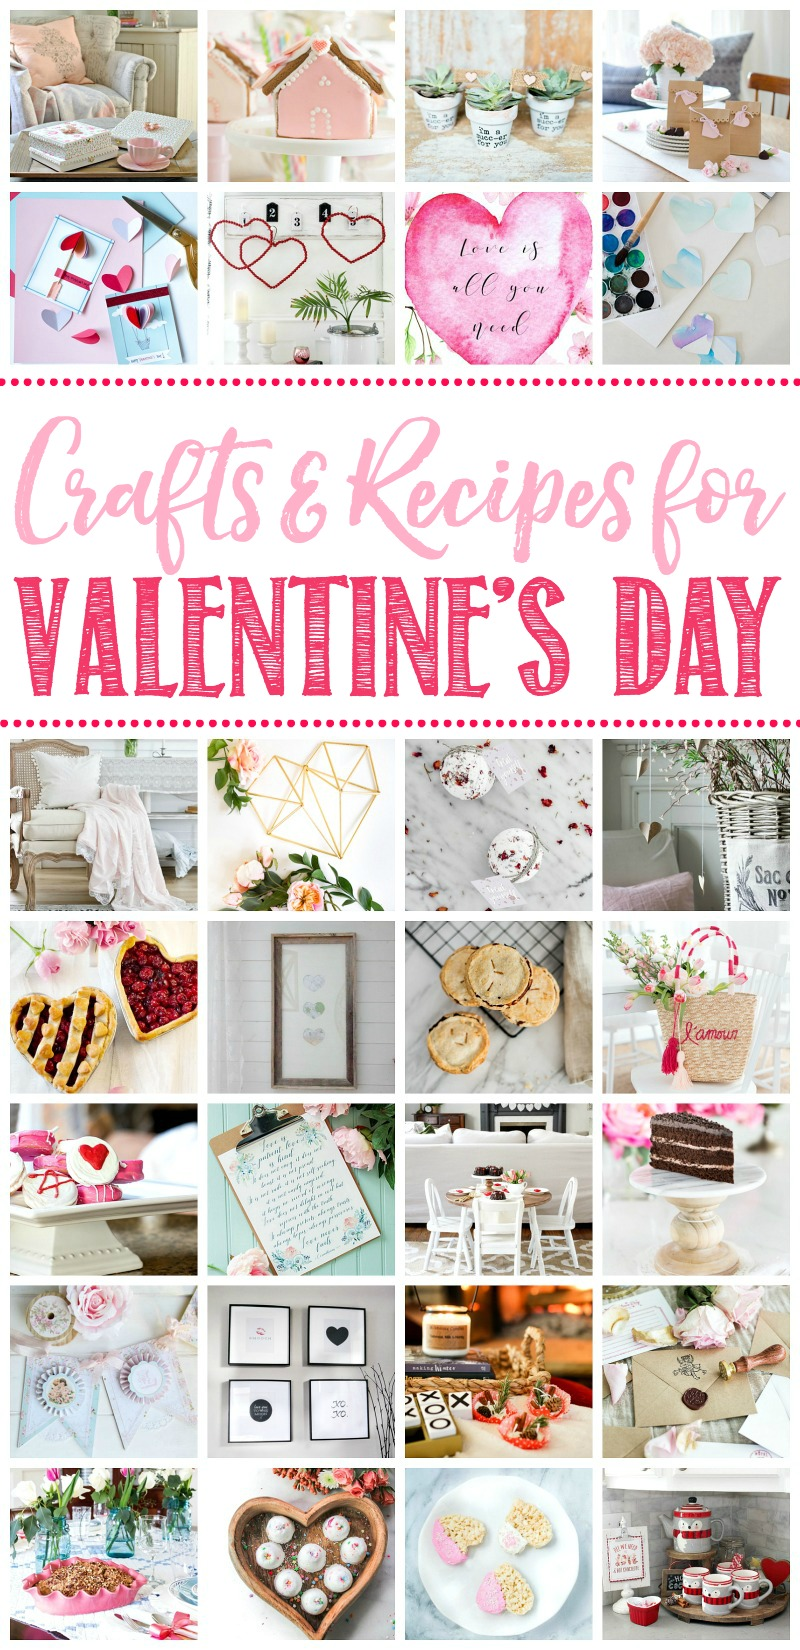 Beautiful collection of heartfelt handmade Valentine's Day crafts and recipes to help you celebrate Valentine's Day.